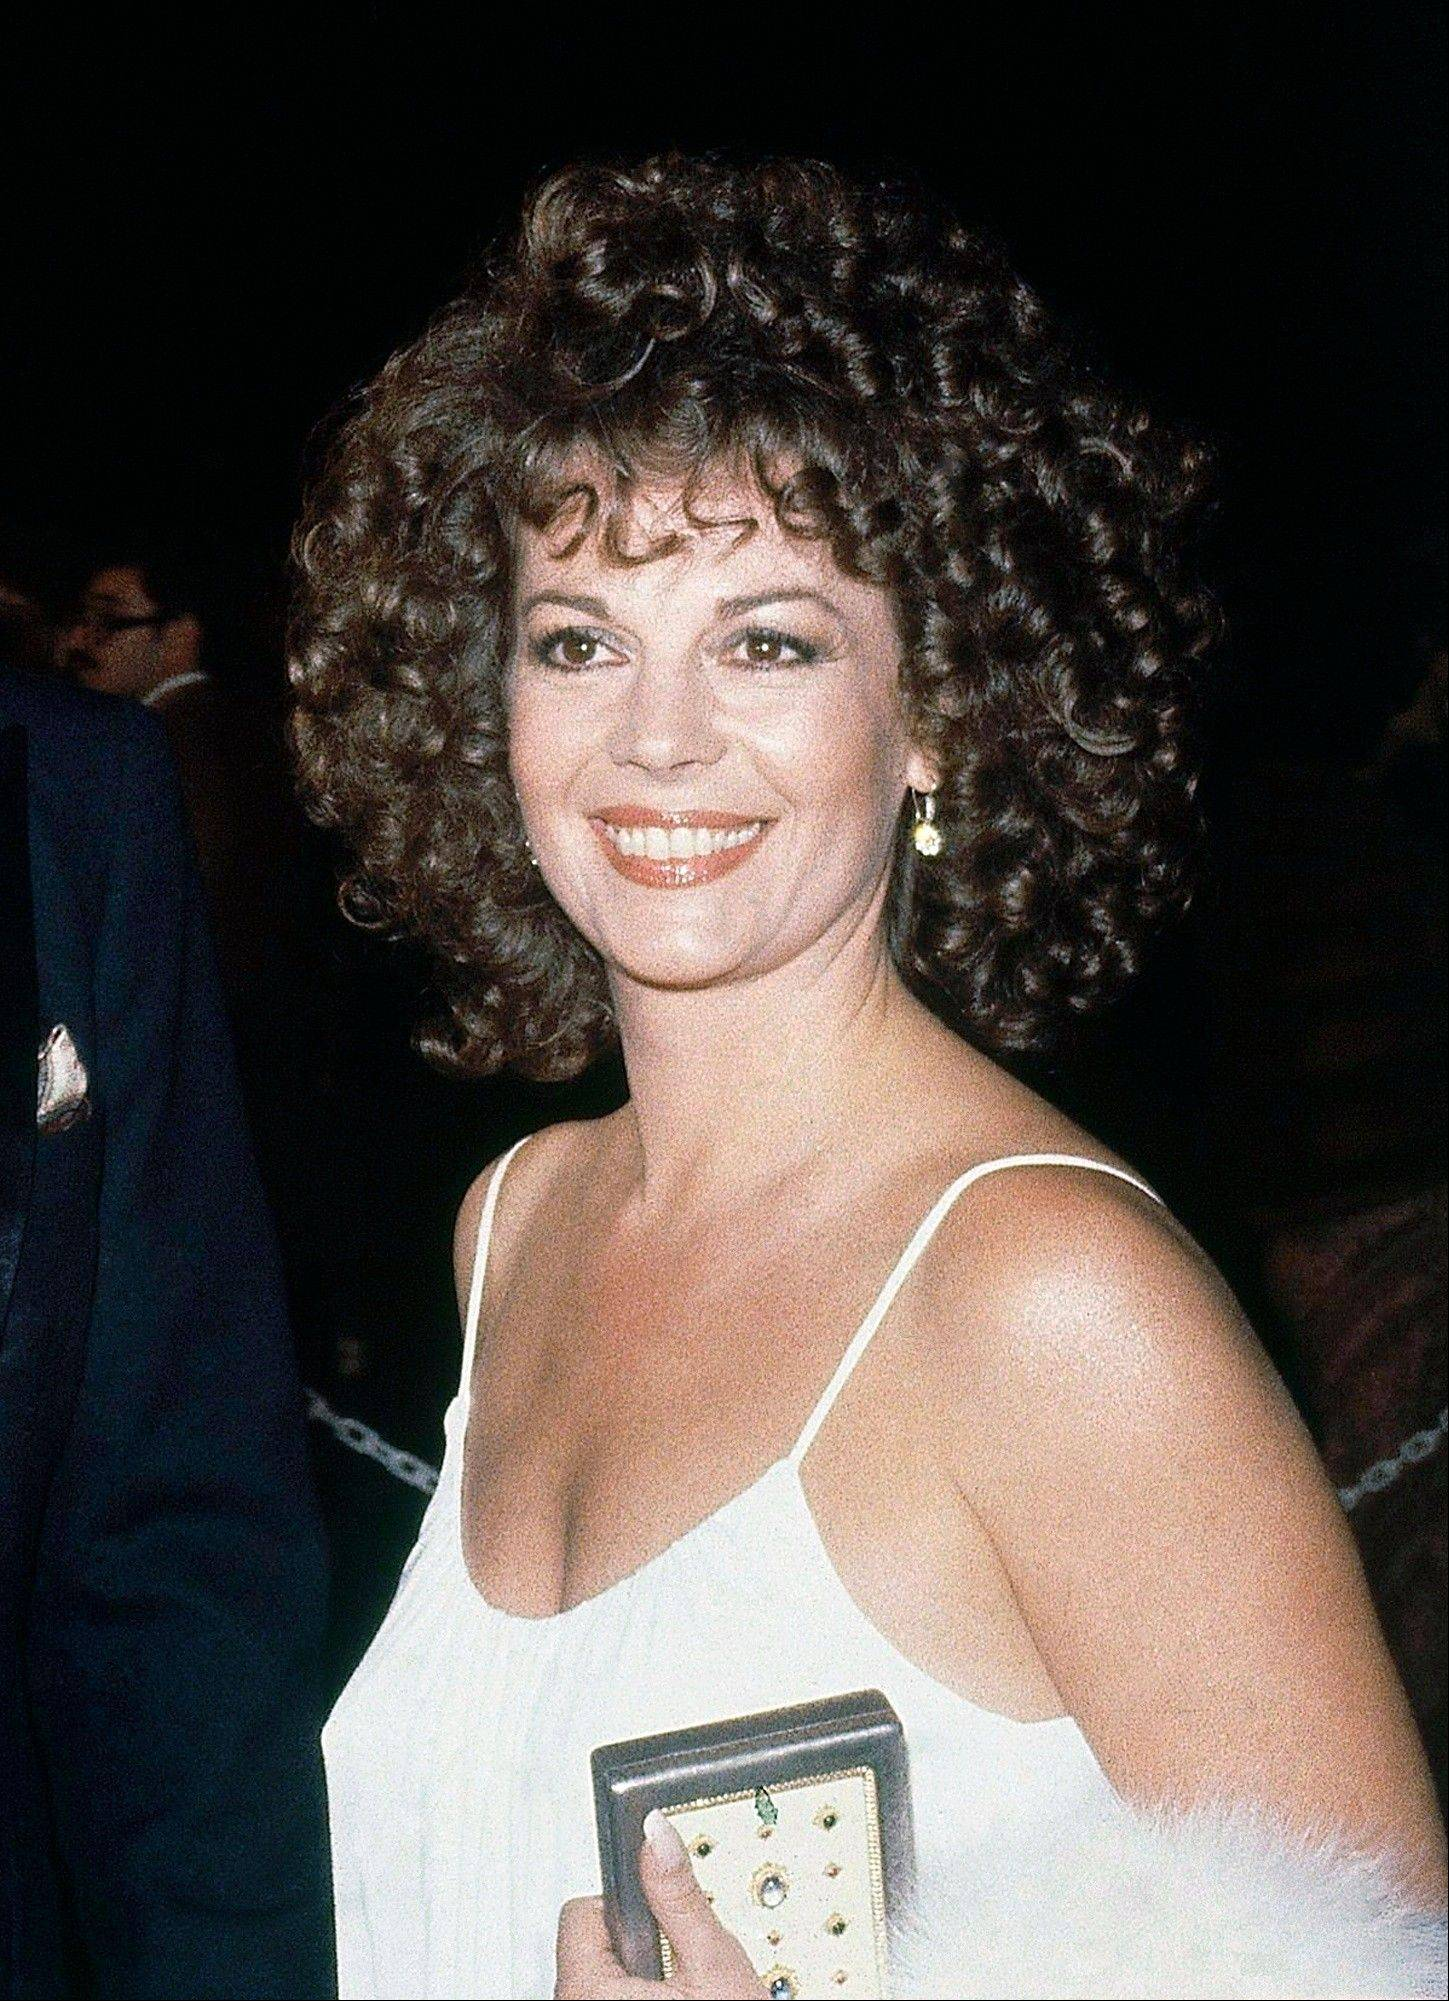 In this April 9, 1979 file photo, actress Natalie Wood is shown at the 51st Annual Academy Awards in Los Angeles. Los Angeles sheriff's homicide detectives are taking another look at Wood's 1981 drowning death based on new information, officials announced Thursday, Nov. 17, 2011.